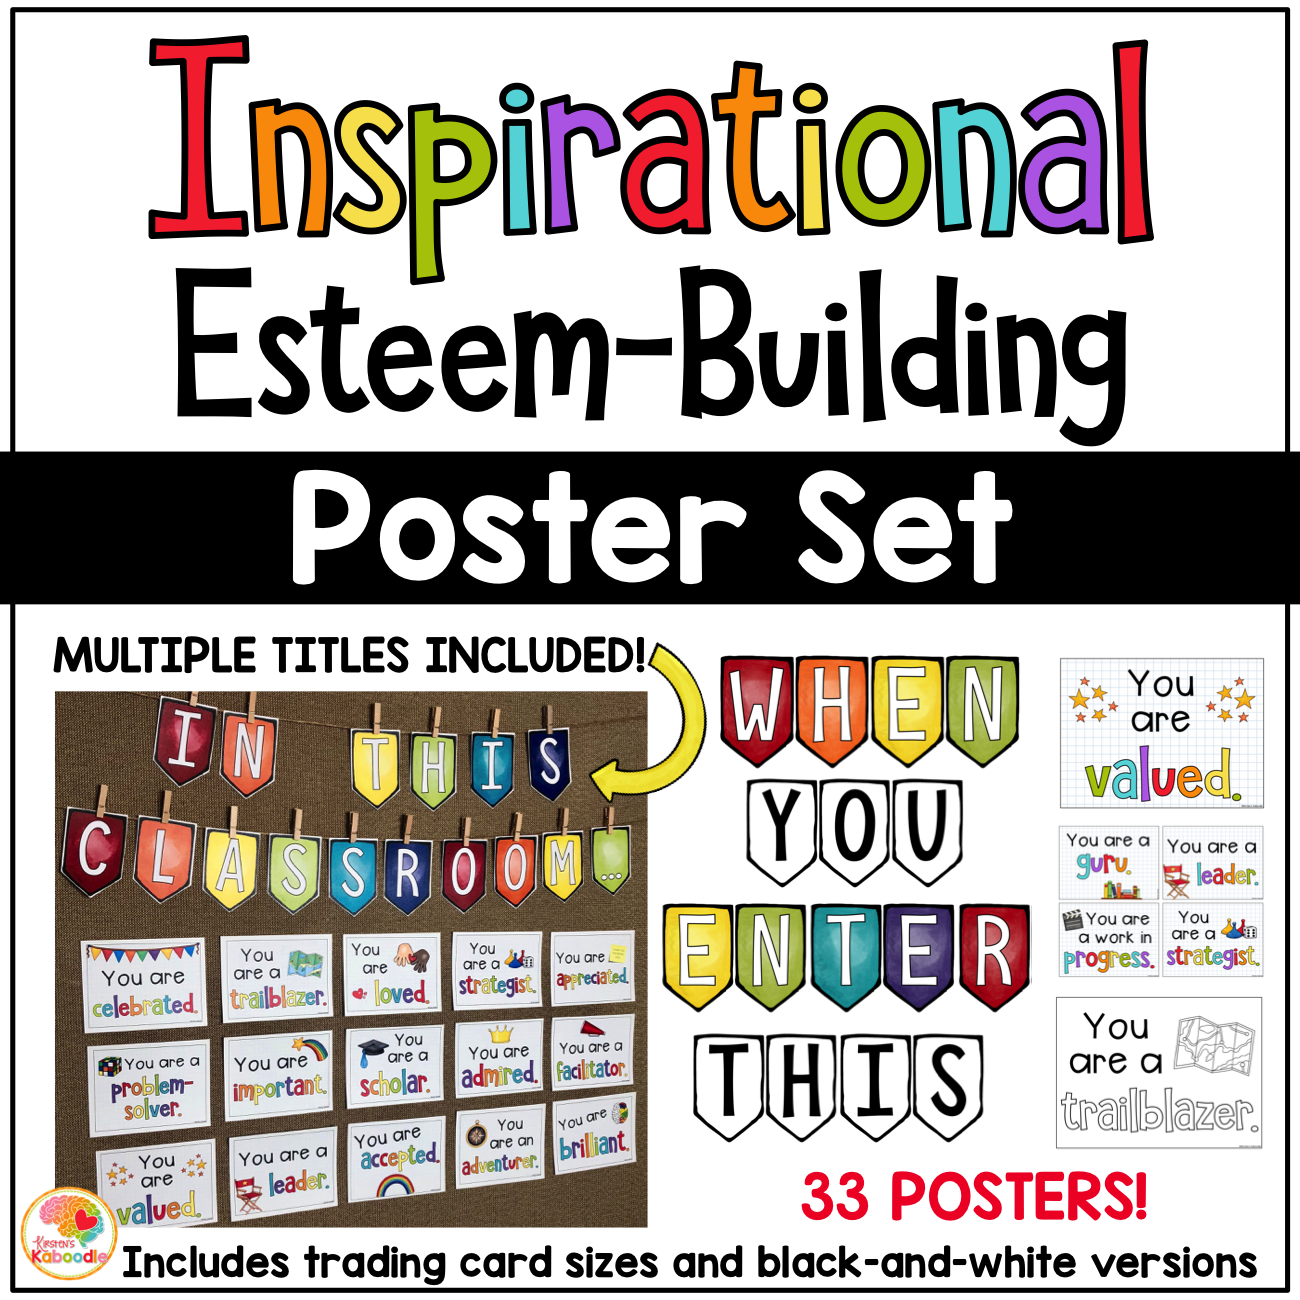 Inspirational Esteem-Building Poster Set